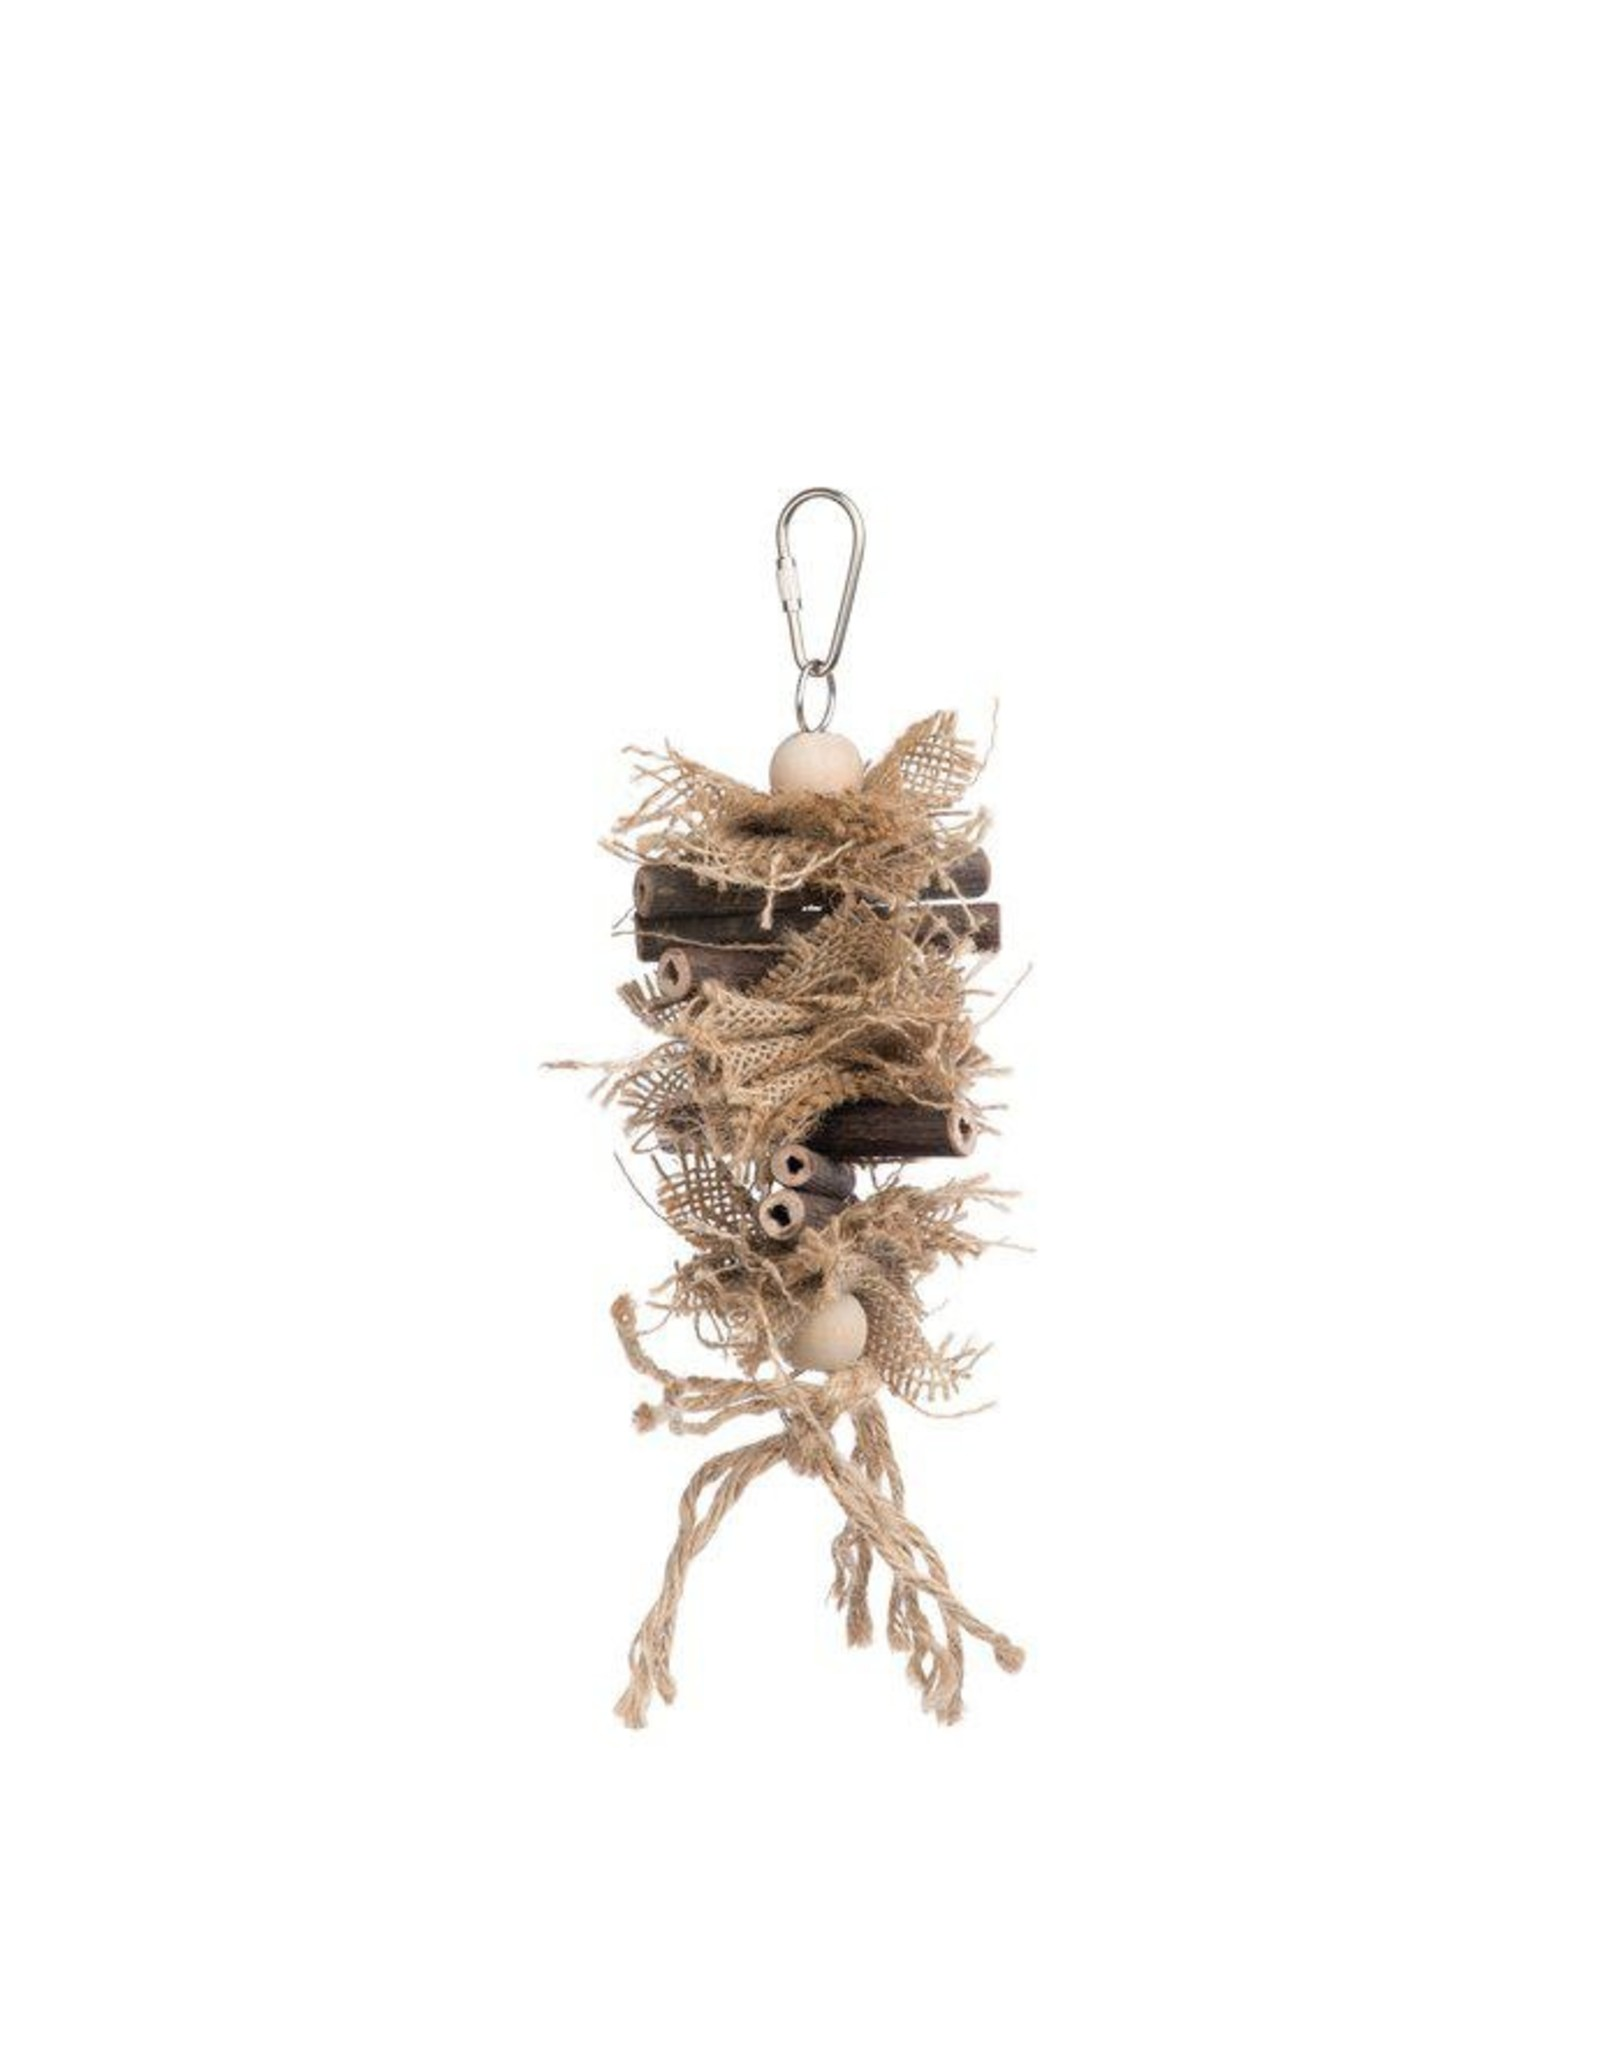 Prevue PREVUE Naturals Brownie Bundle Bird Toy